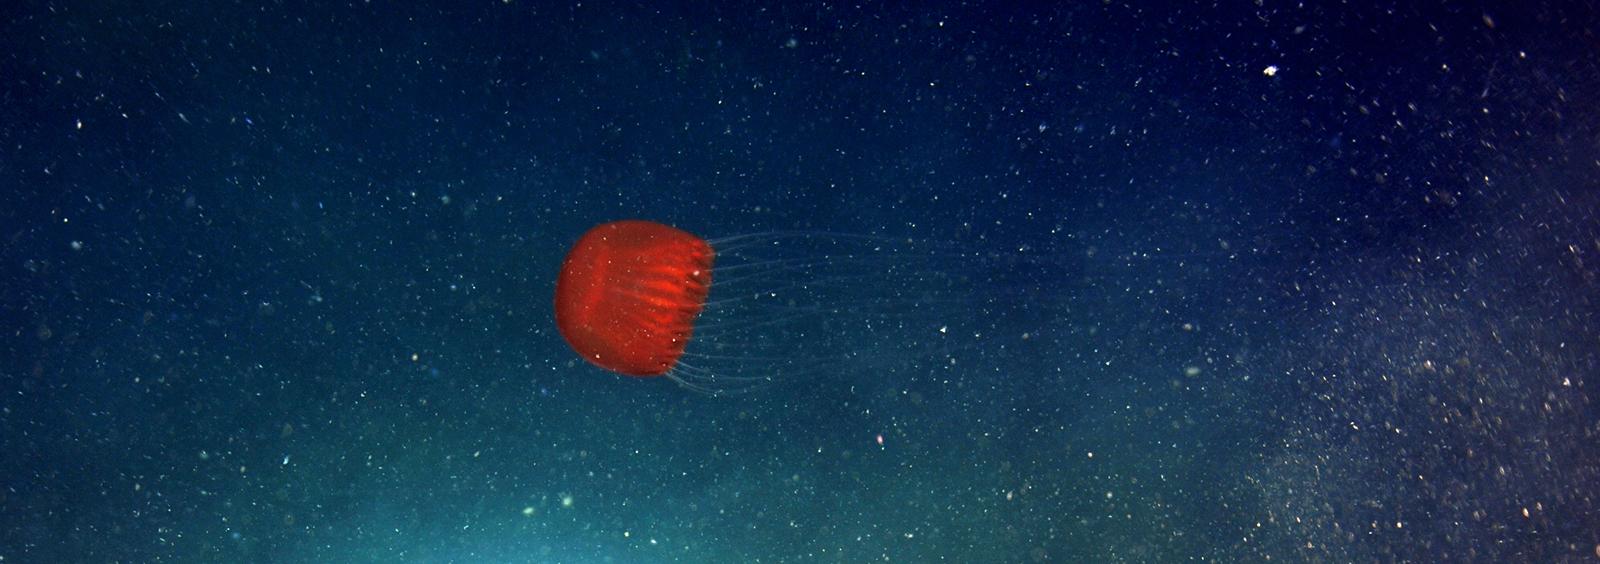 Jellyfish at depth 892m in Barkley Canyon Pacific Coast near Vancouver Island credit Ocean Networks Canada